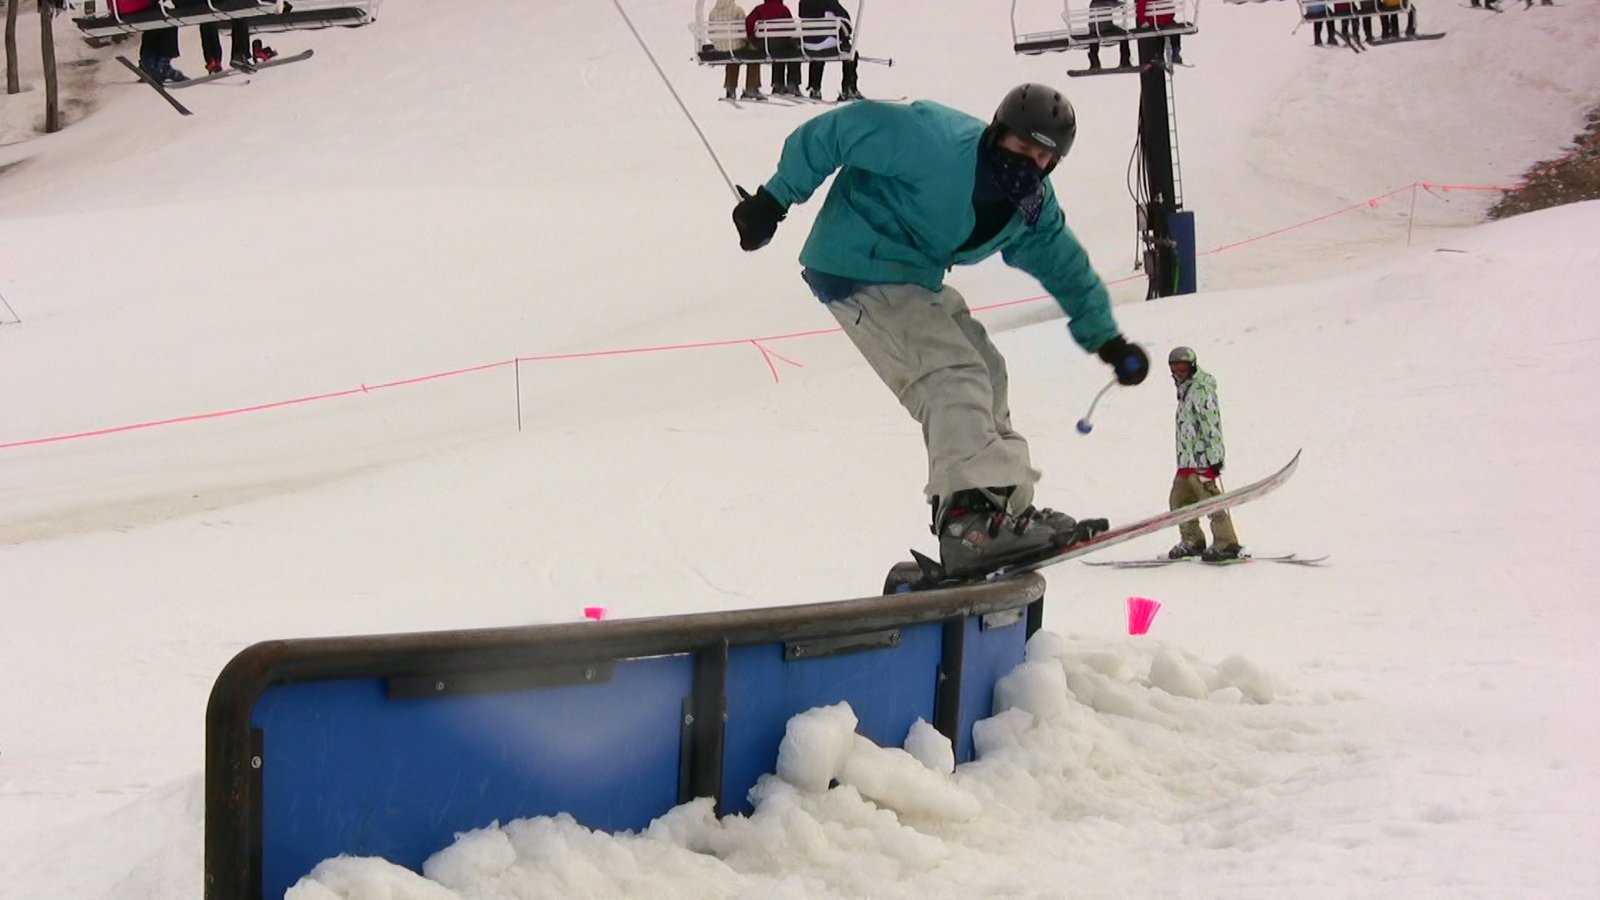 Video still: Sam on c-rail